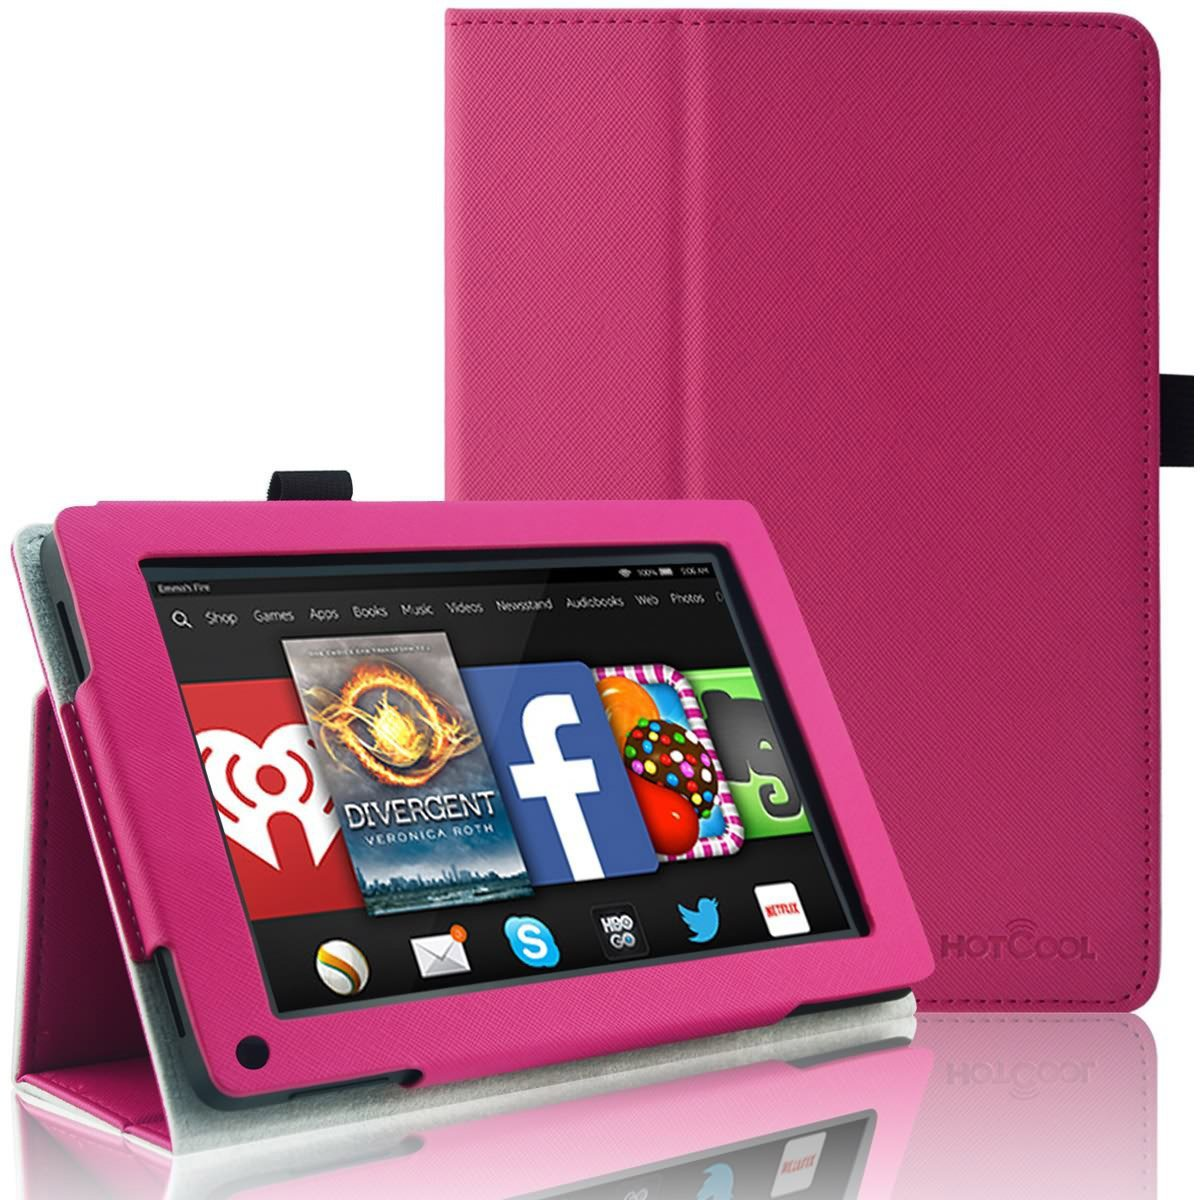 Cheap Original Kindle Fire Case, find Original Kindle Fire